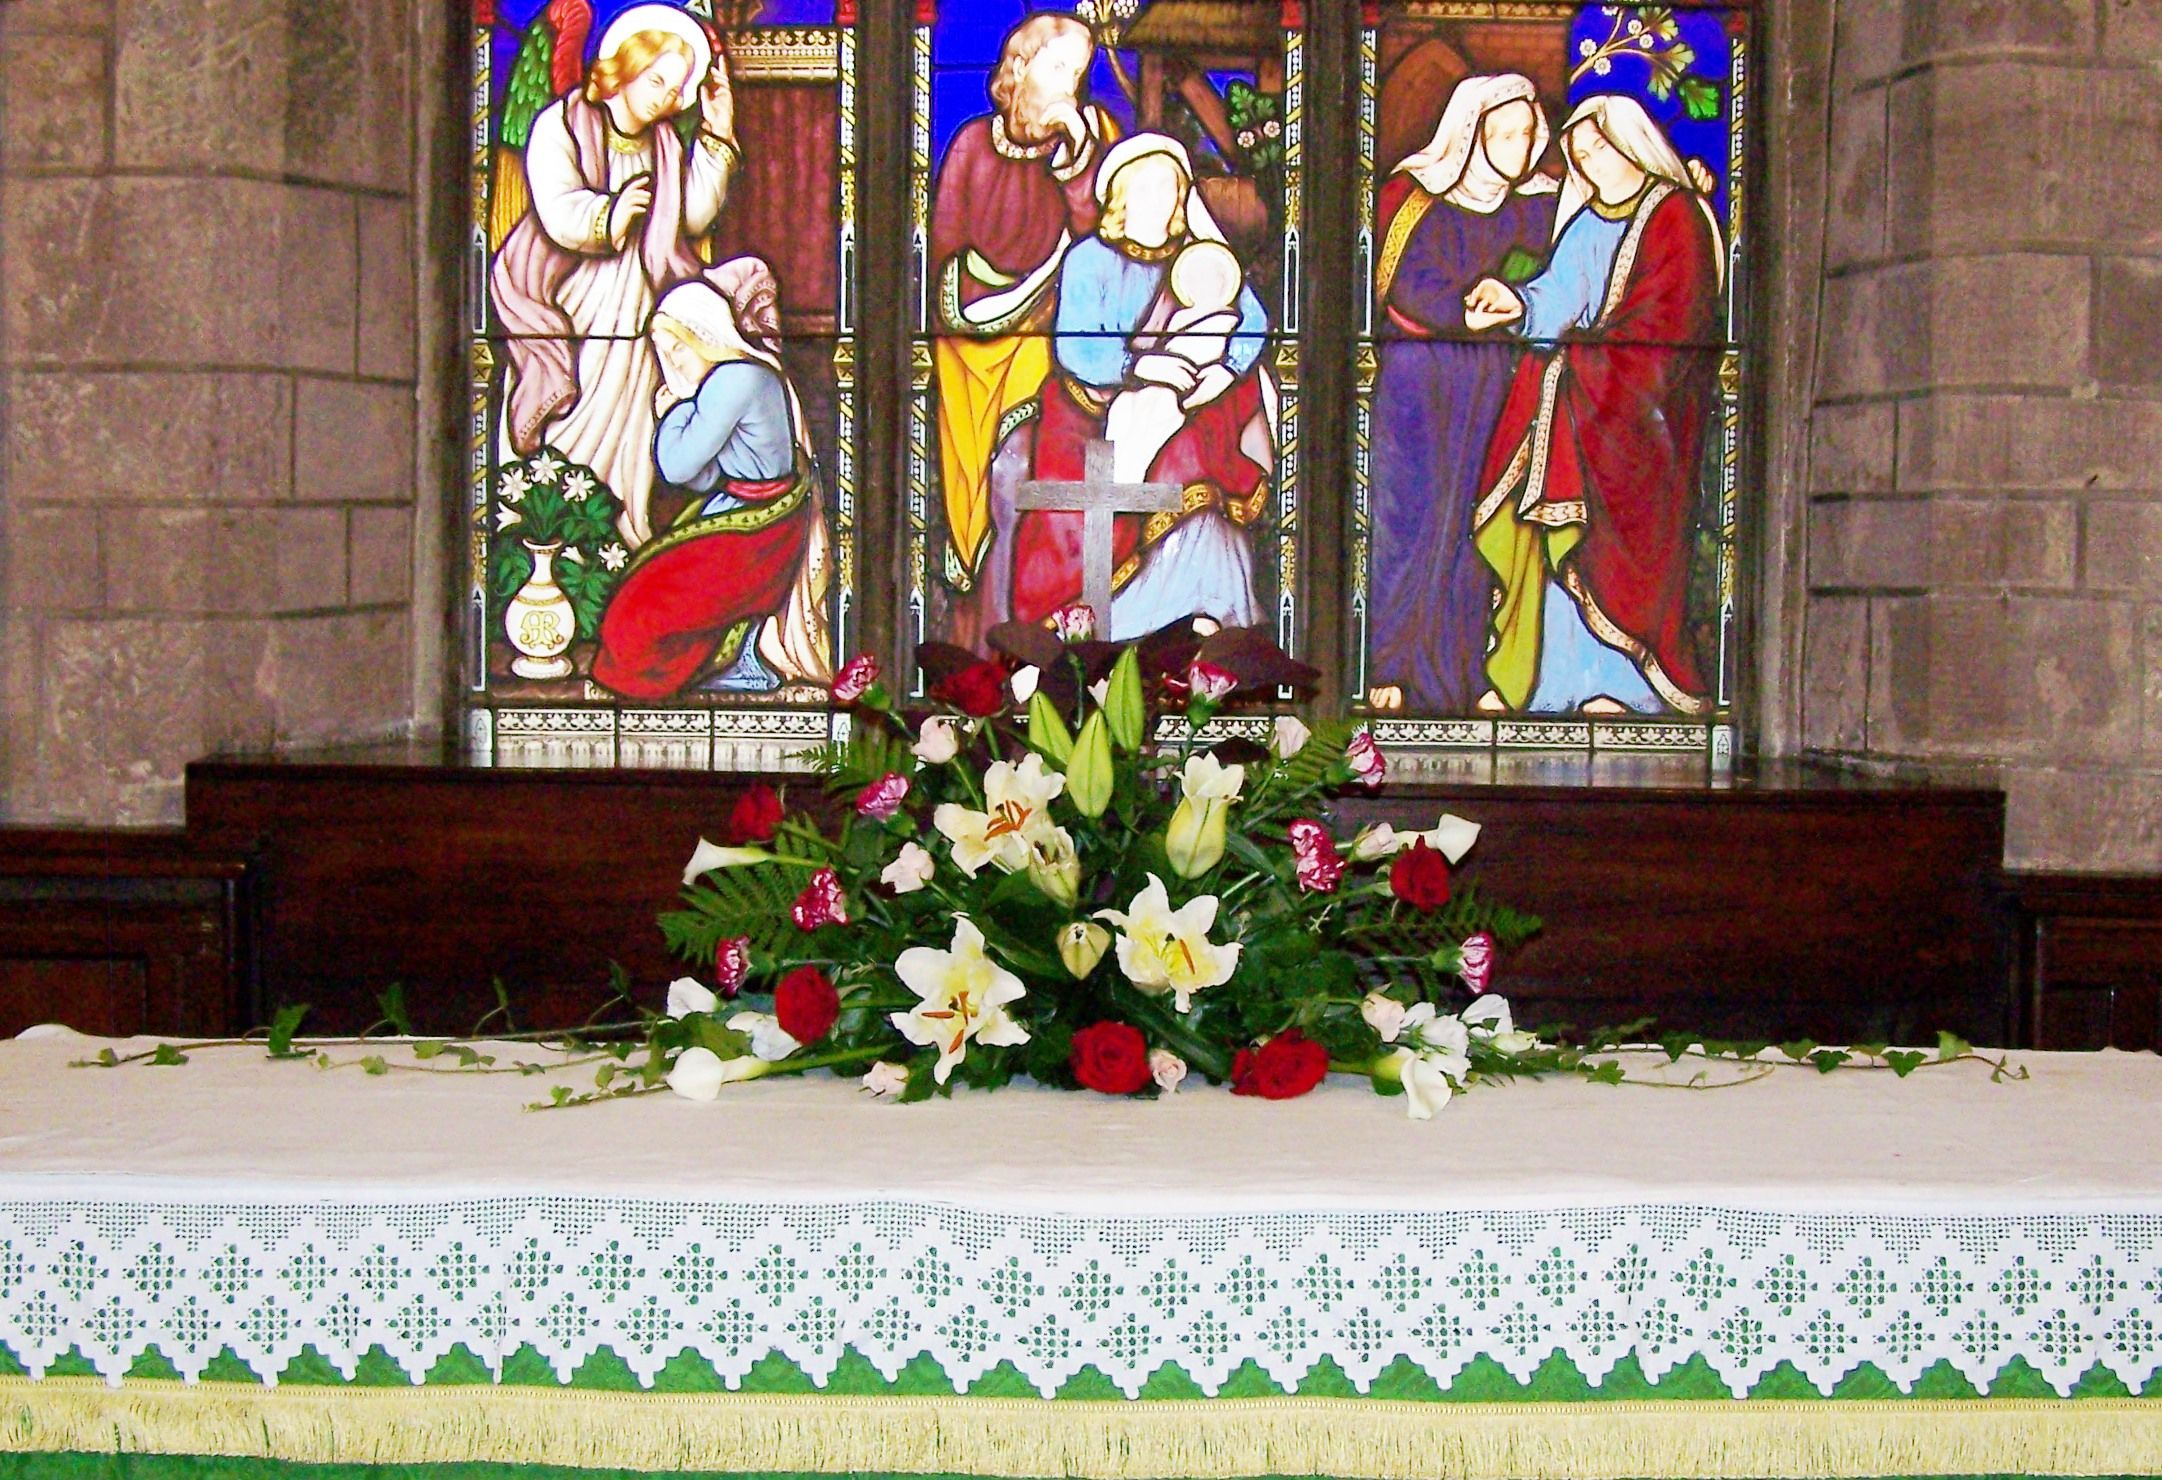 St Giles, Ludford, wedding in August 2012 - arrangement on the altar.